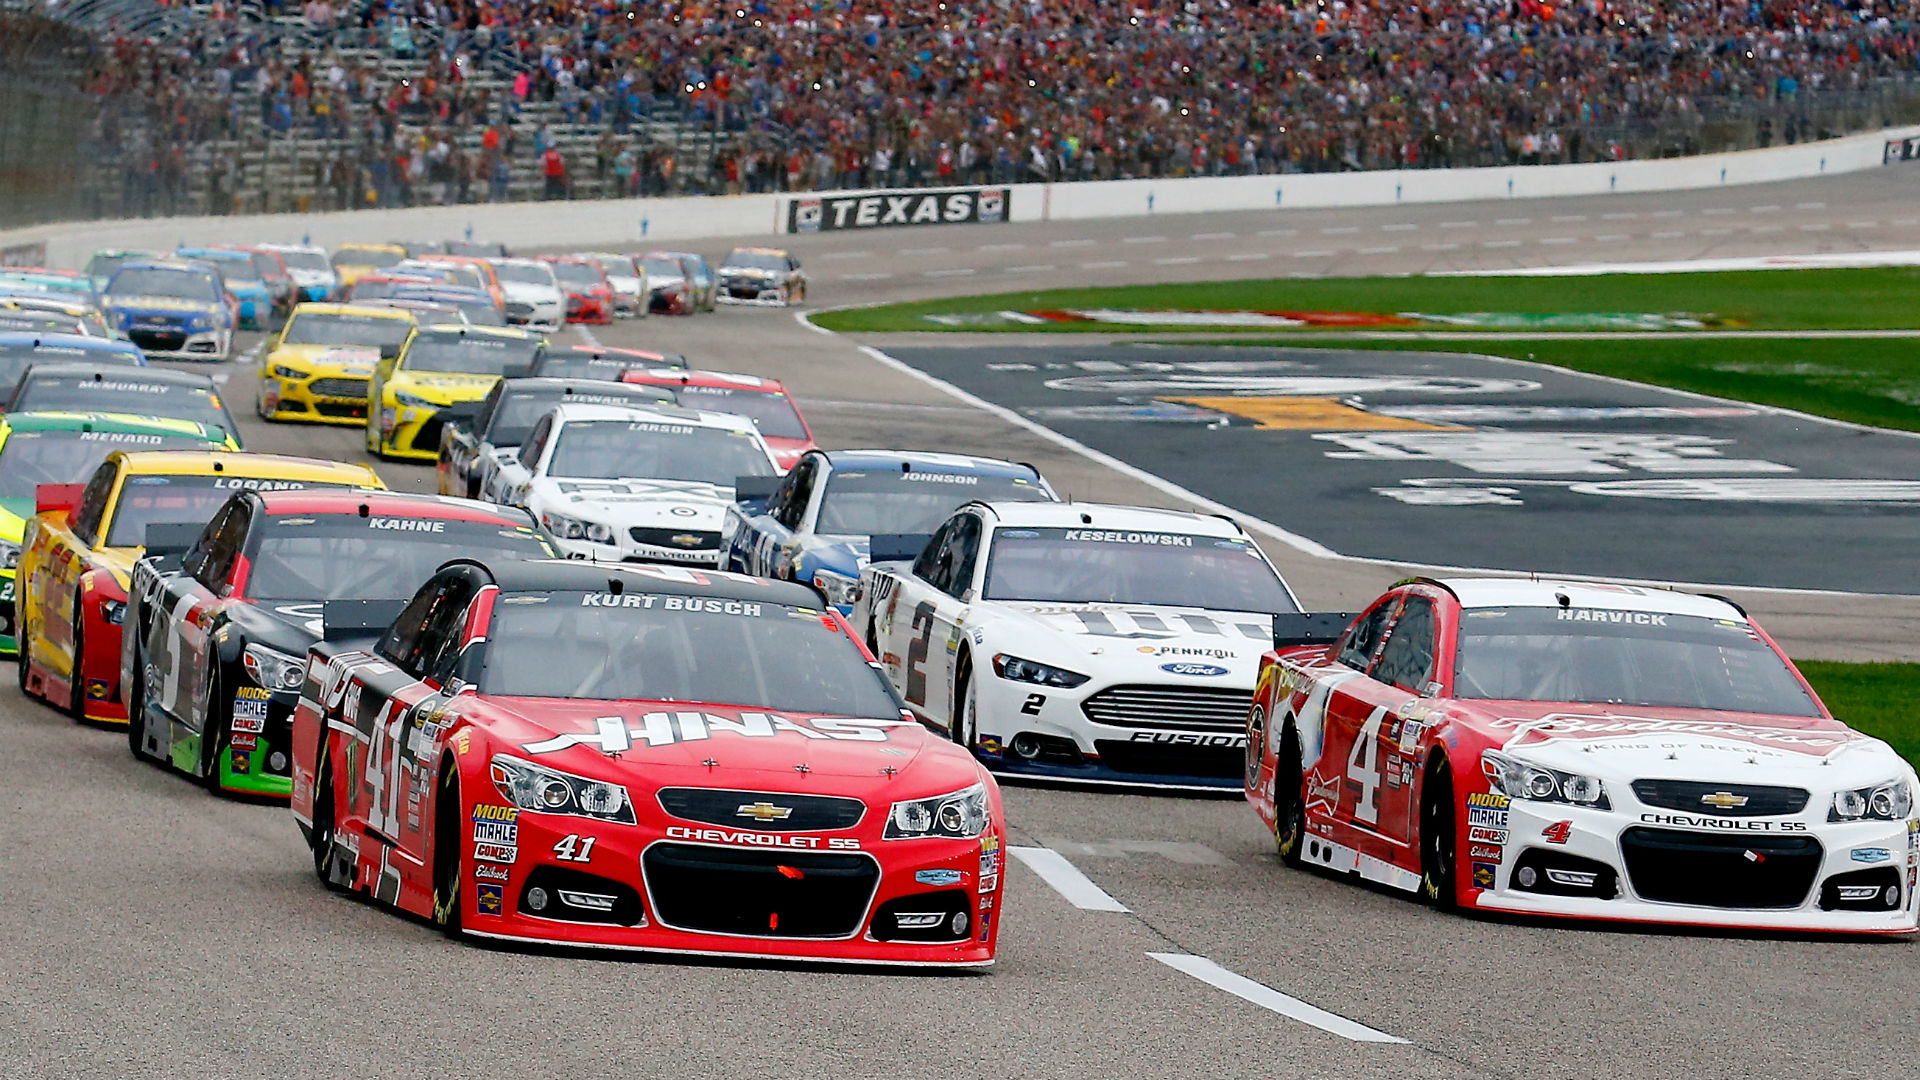 Kevin harvick texas motor sdway for Starting lineup texas motor speedway